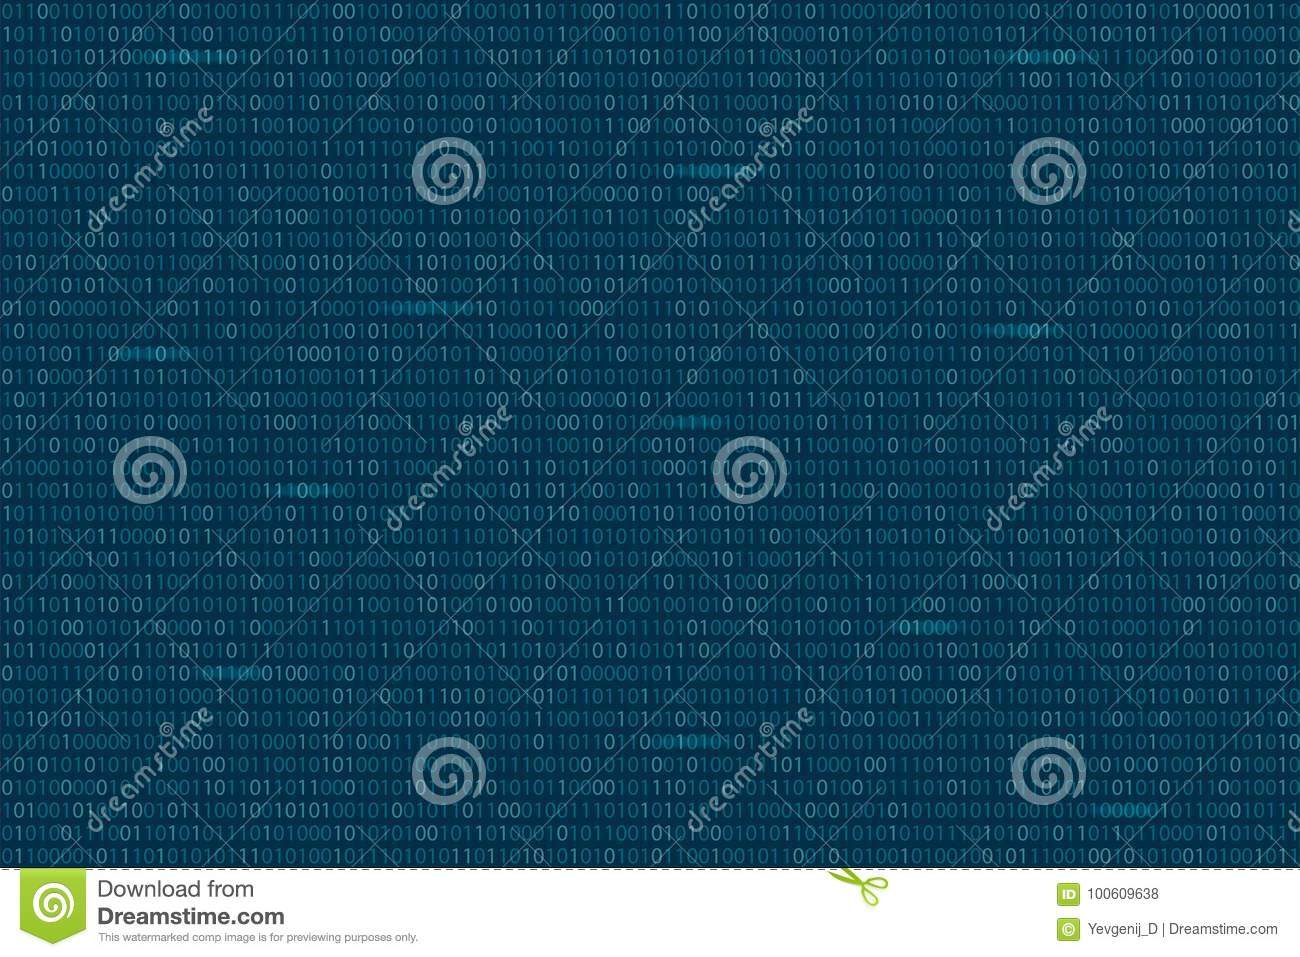 hacker wallpaper stock illustrations 3 033 hacker wallpaper stock illustrations vectors clipart dreamstime https www dreamstime com abstract binary code background digital technology wallpaper cyber data decryption encryption hacker background concept vector image100609638